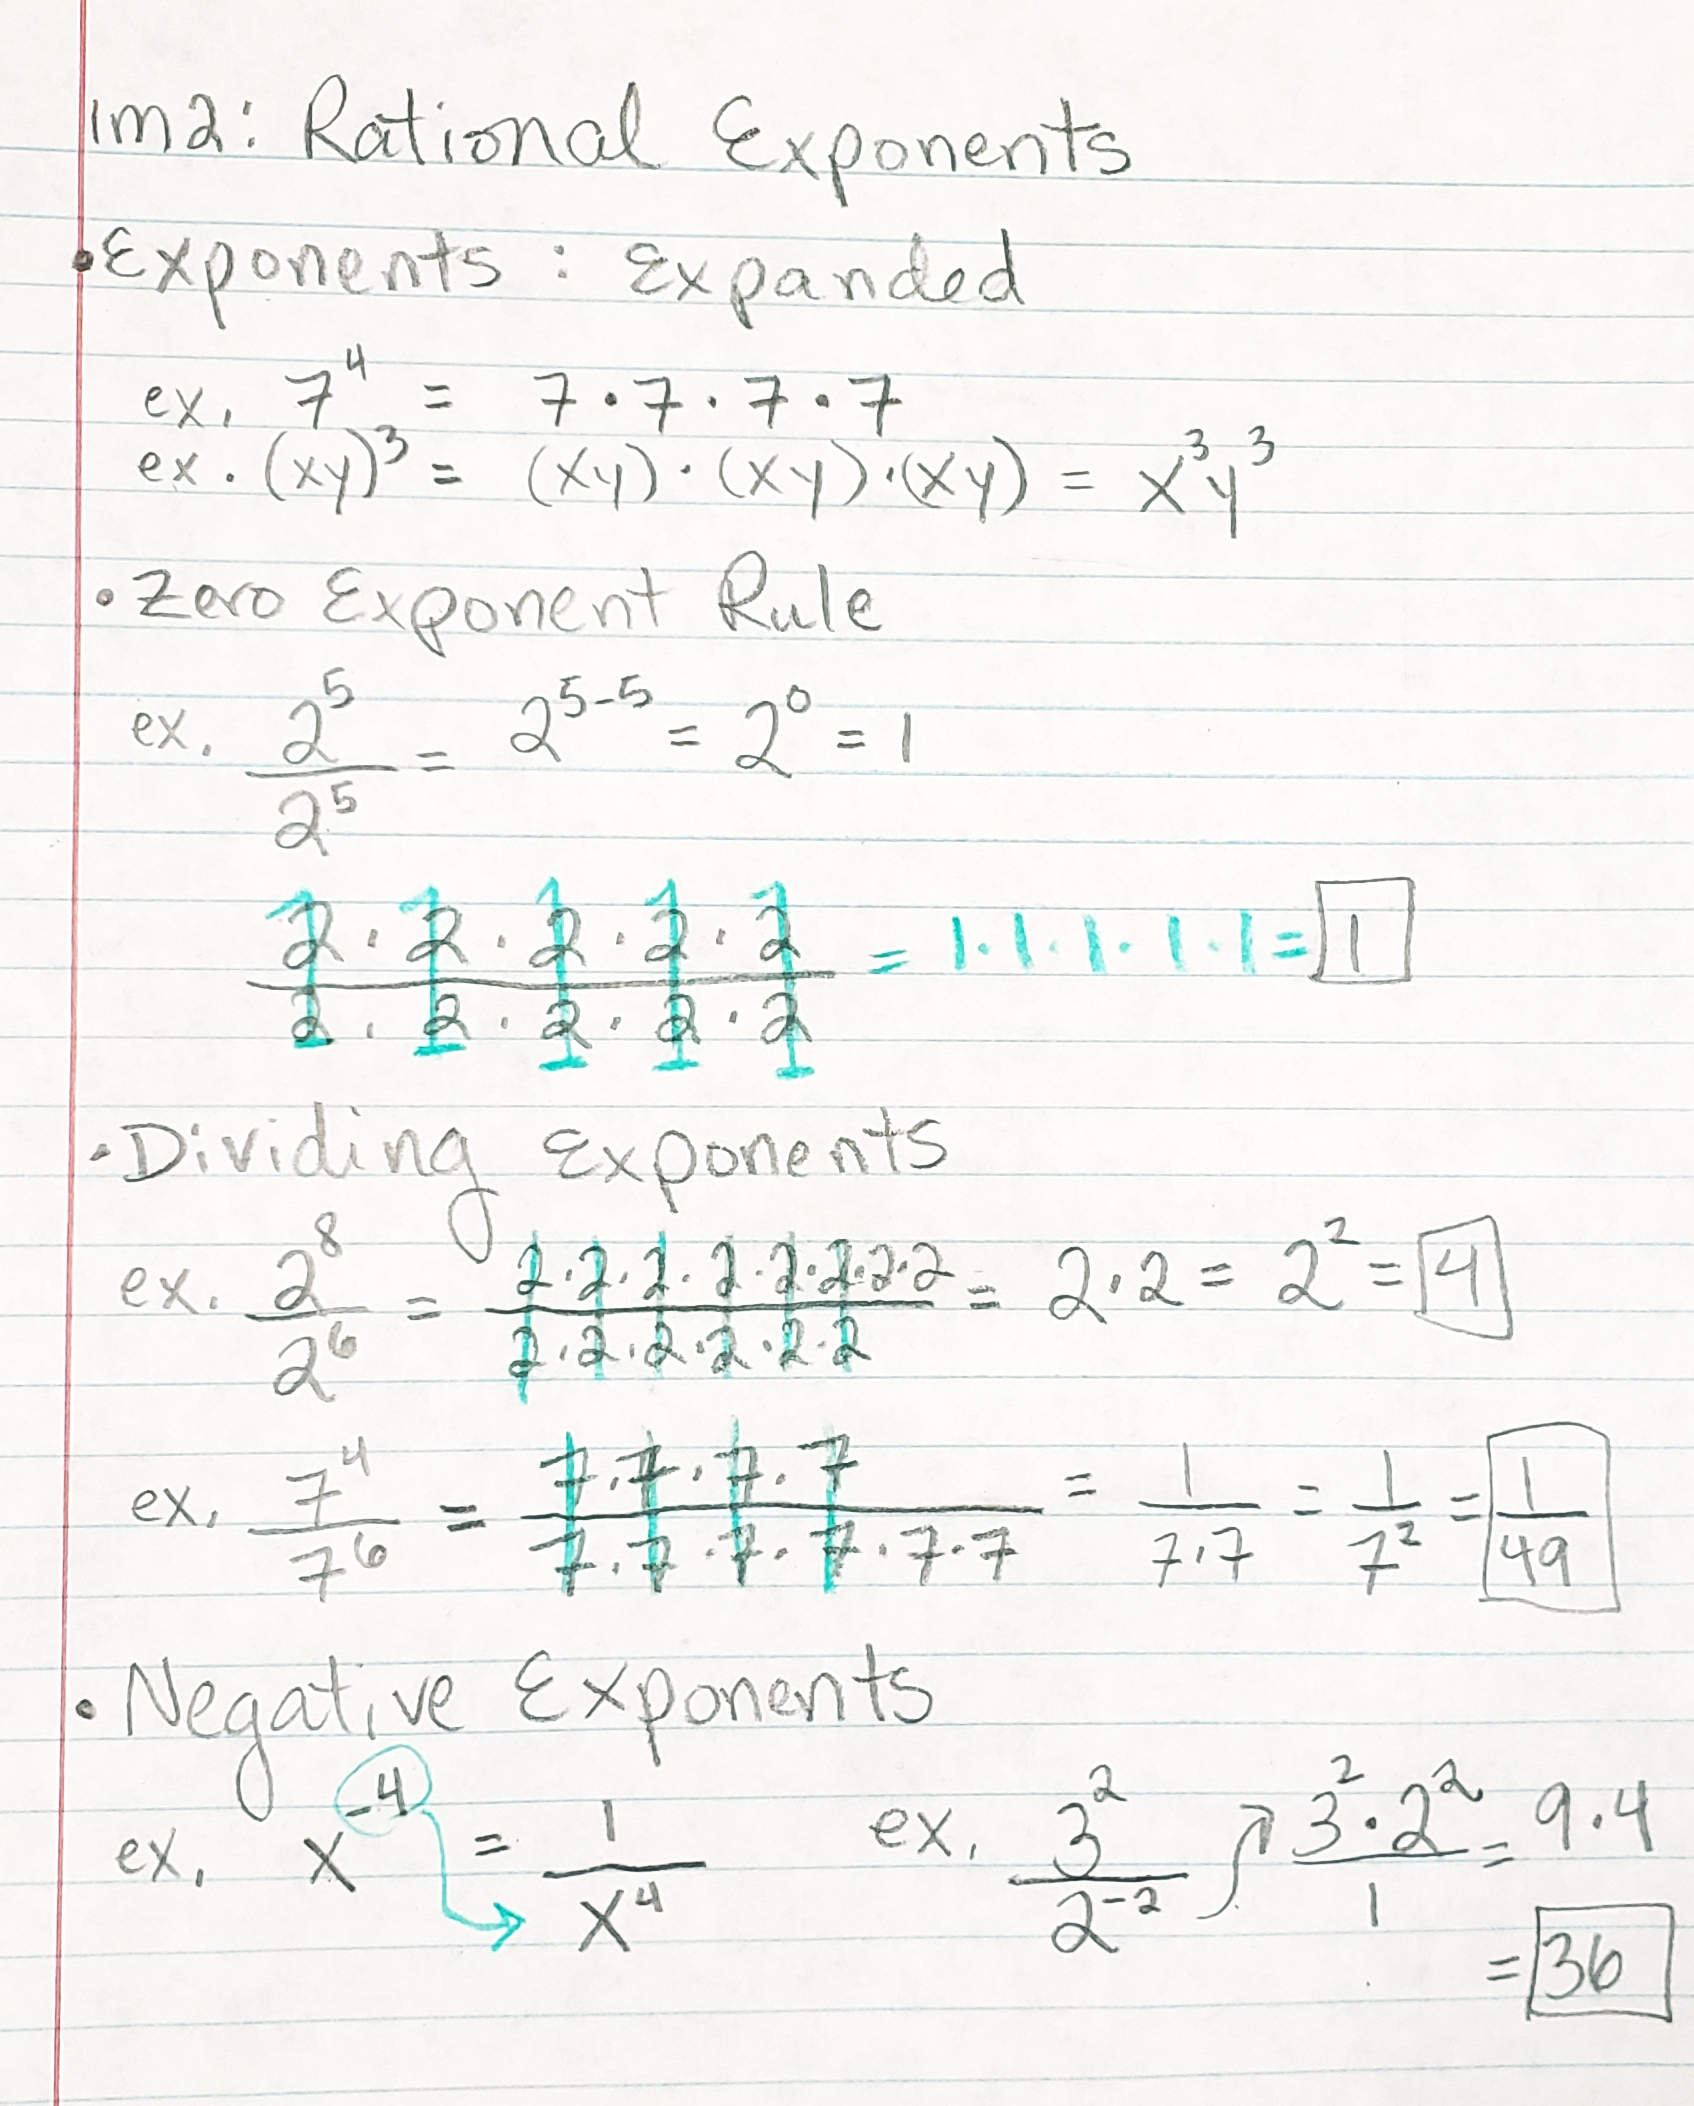 1 1 Explain Rational Exponents Amp Radicals Mrs Mayer S